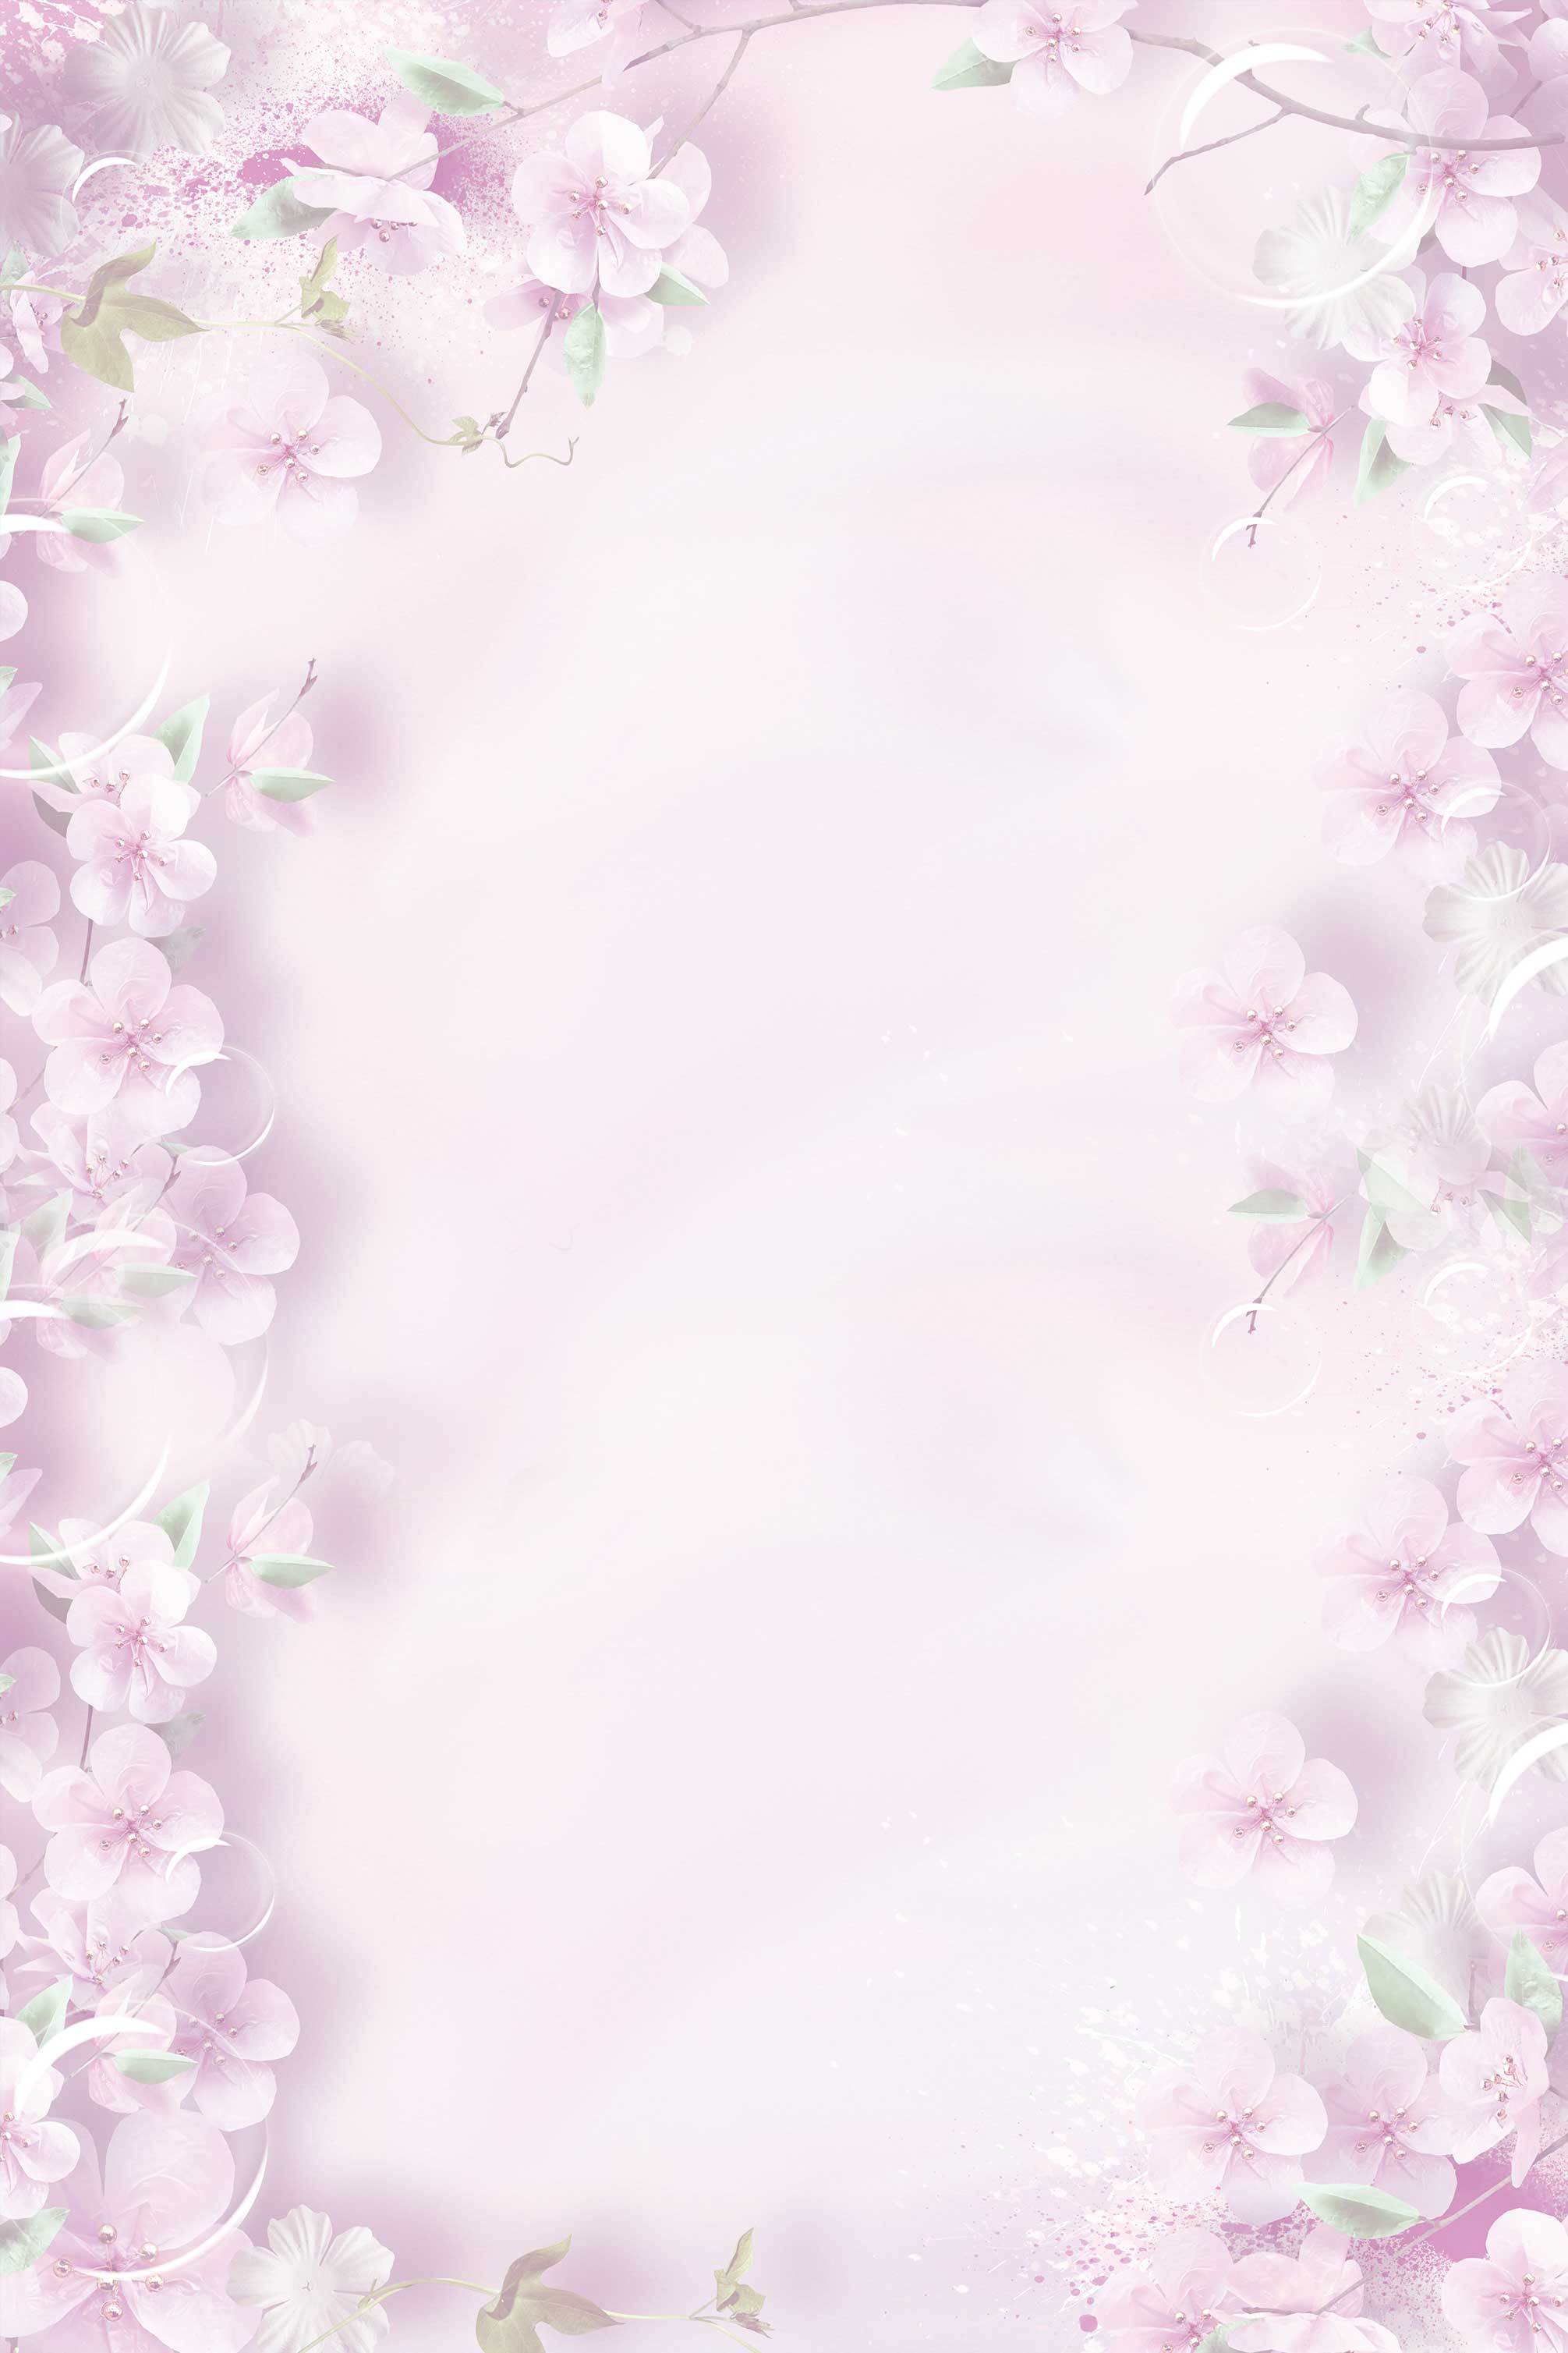 See more ideas about pink, pink wallpaper, pink aesthetic. Aesthetic Pink Sunscreen Promotional Poster Background